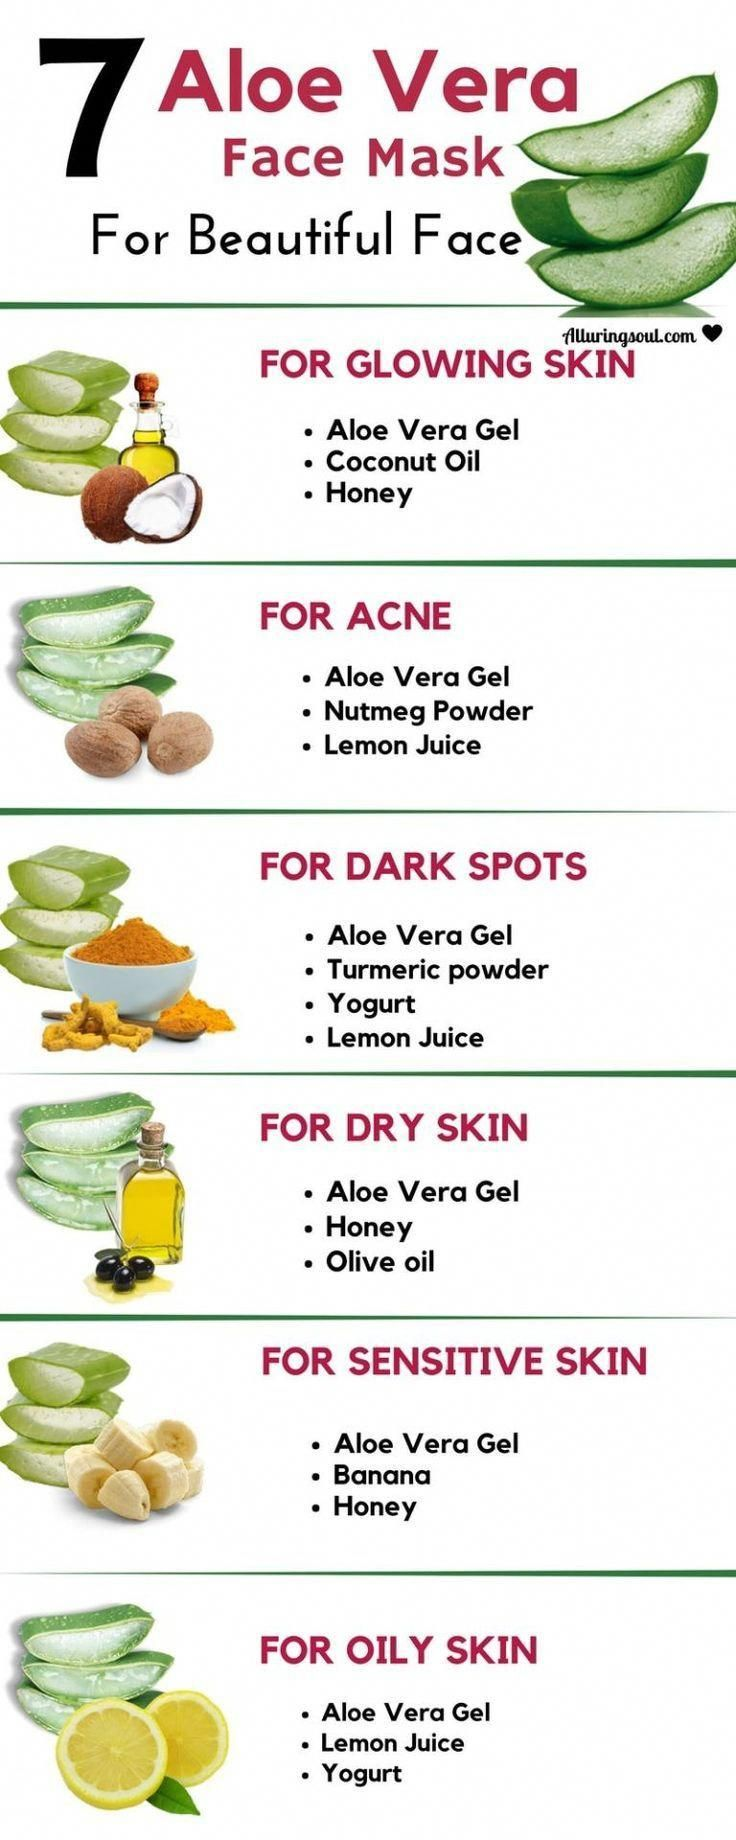 Aloe Vera Yogurt Tattoo Removal: Regular Skin Care Tips